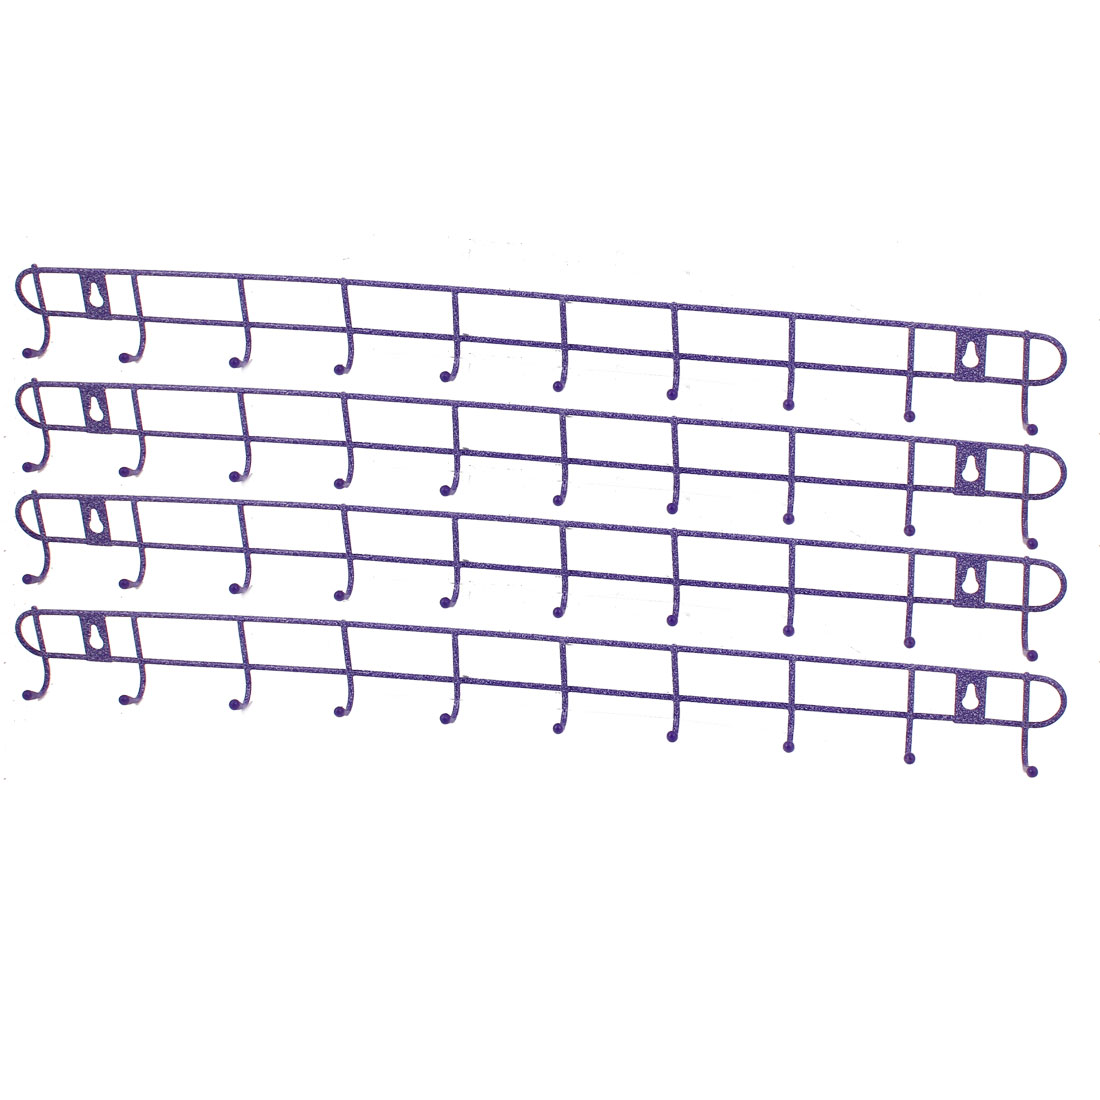 Metal 10 Hooks Home Kitchenware Hat Coat Towels Wall Hanger Rack Holder Purple 4PCS